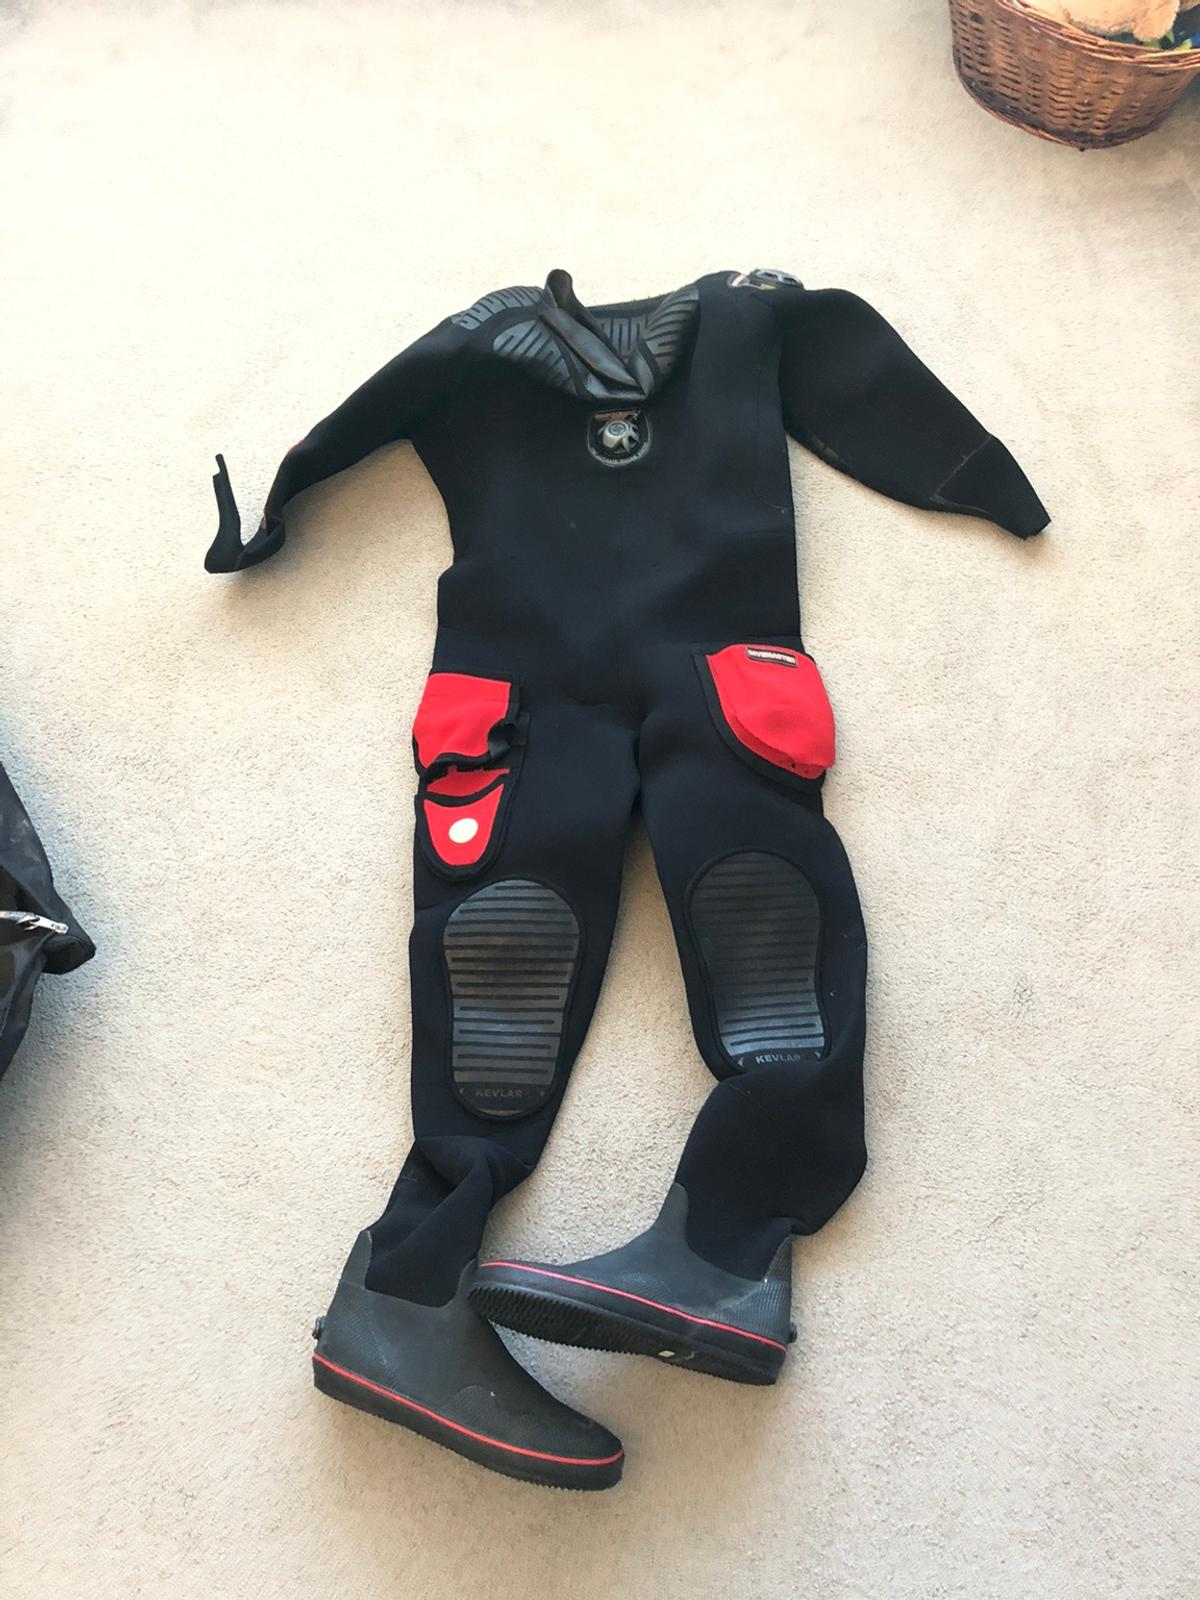 Northern Diver, dry suit only wore 8-10 times, mint condition.